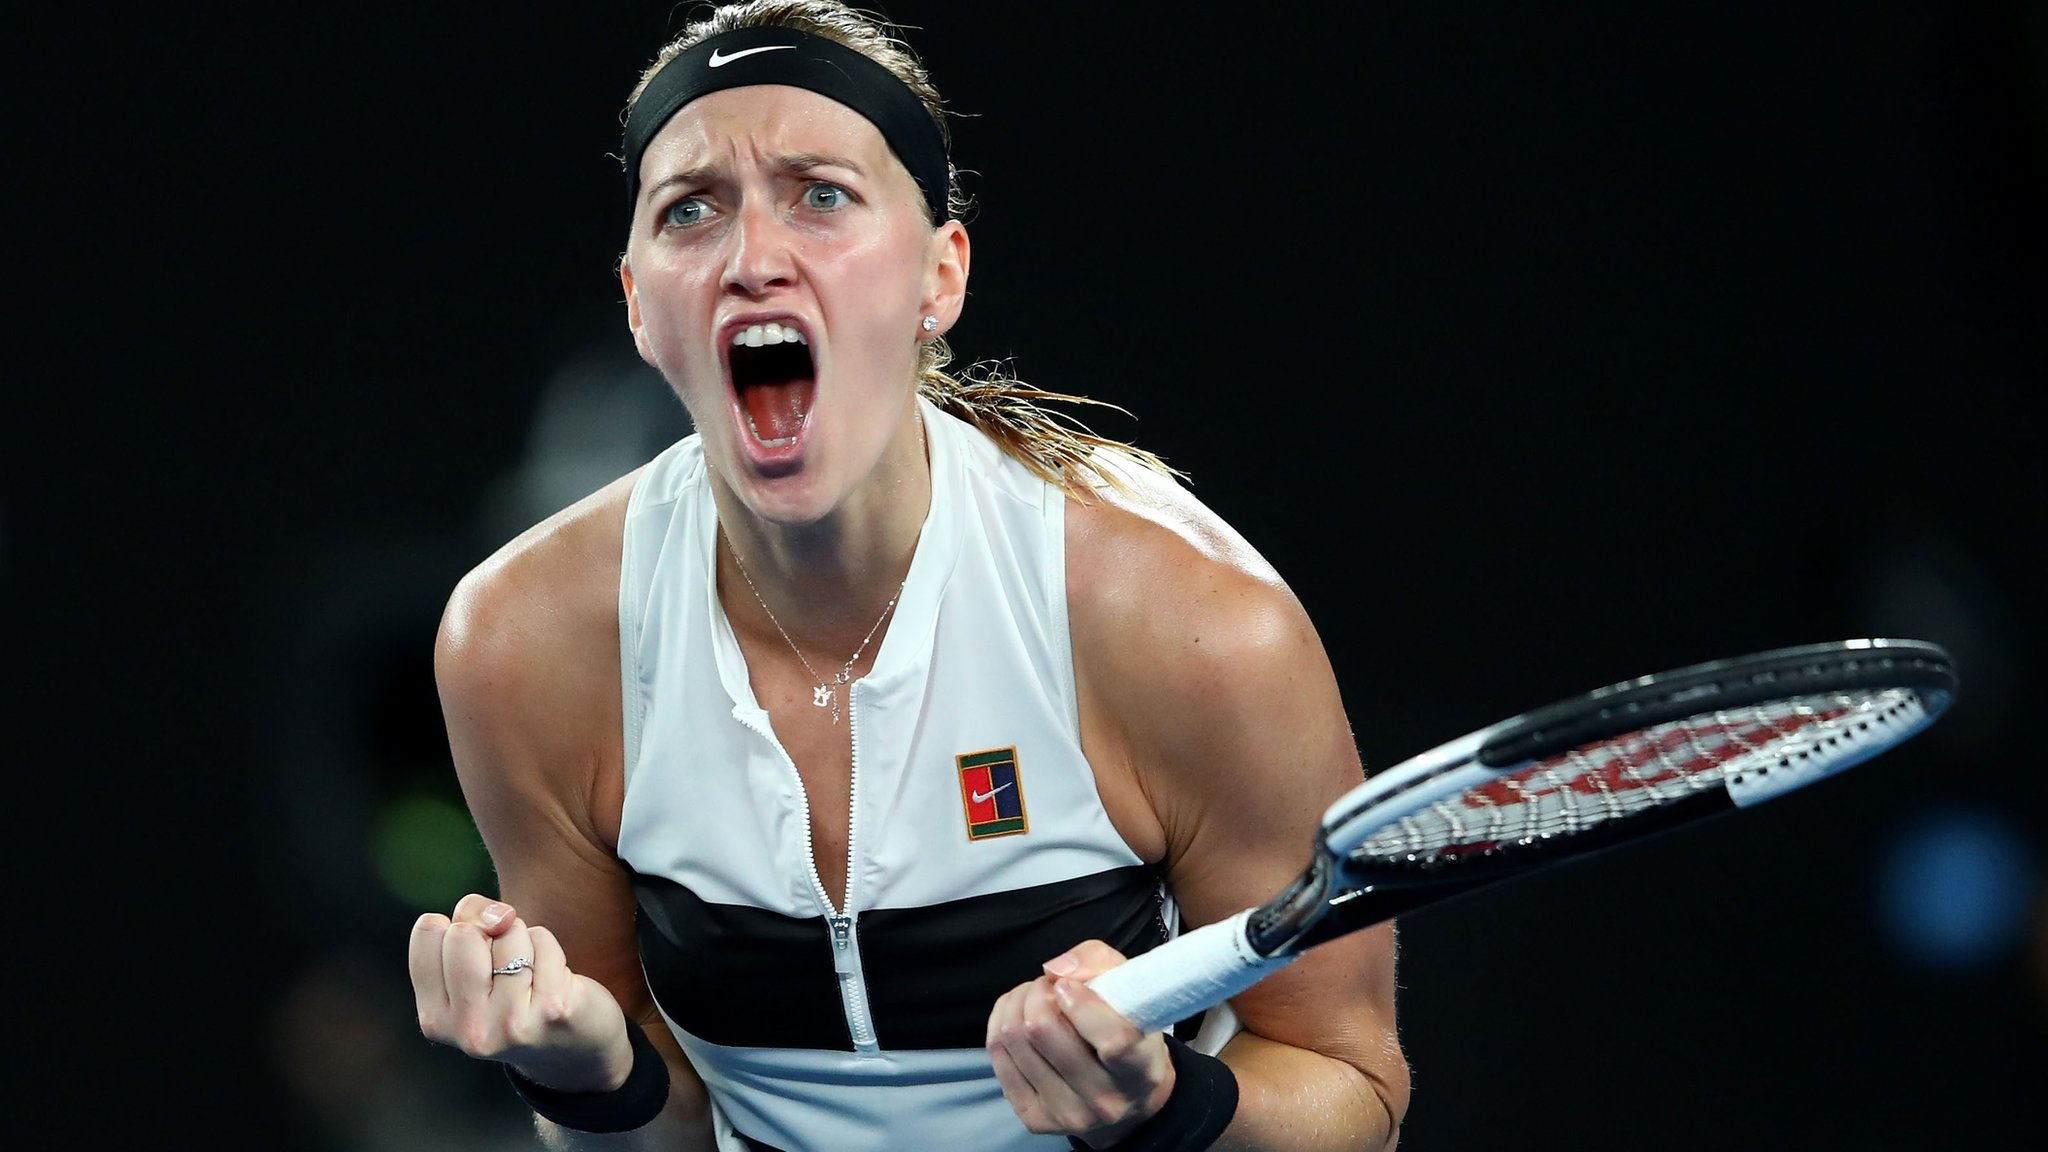 'Not many thought I could return after knife attack' - Kvitova